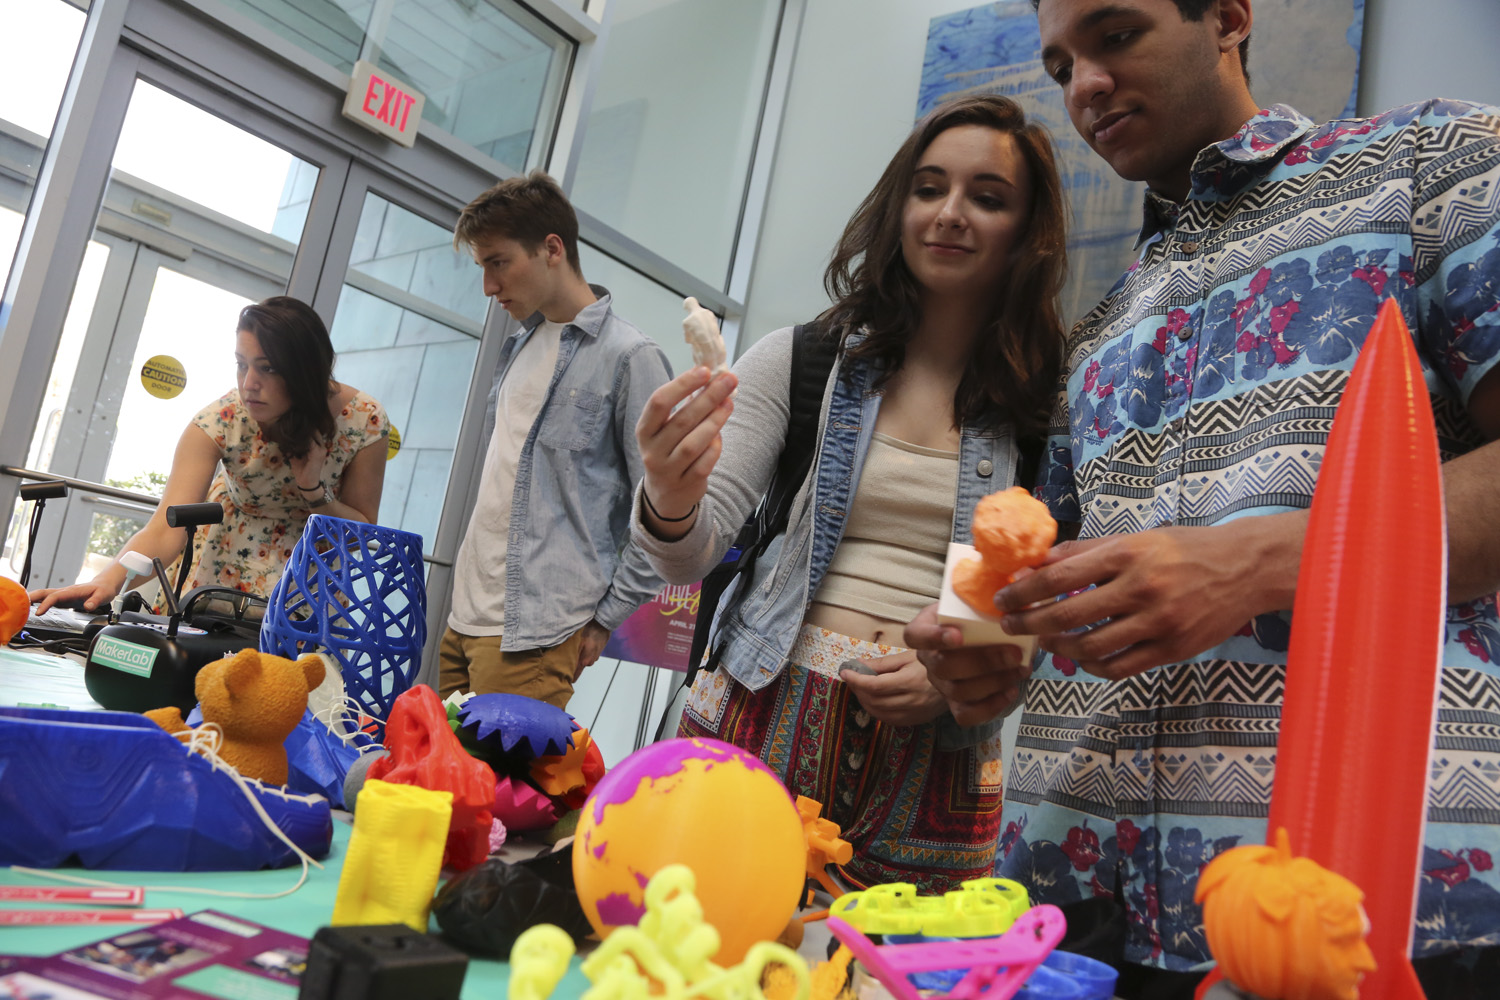 A 3D printing exhibit courtesy of the Brandeis MakerLab.